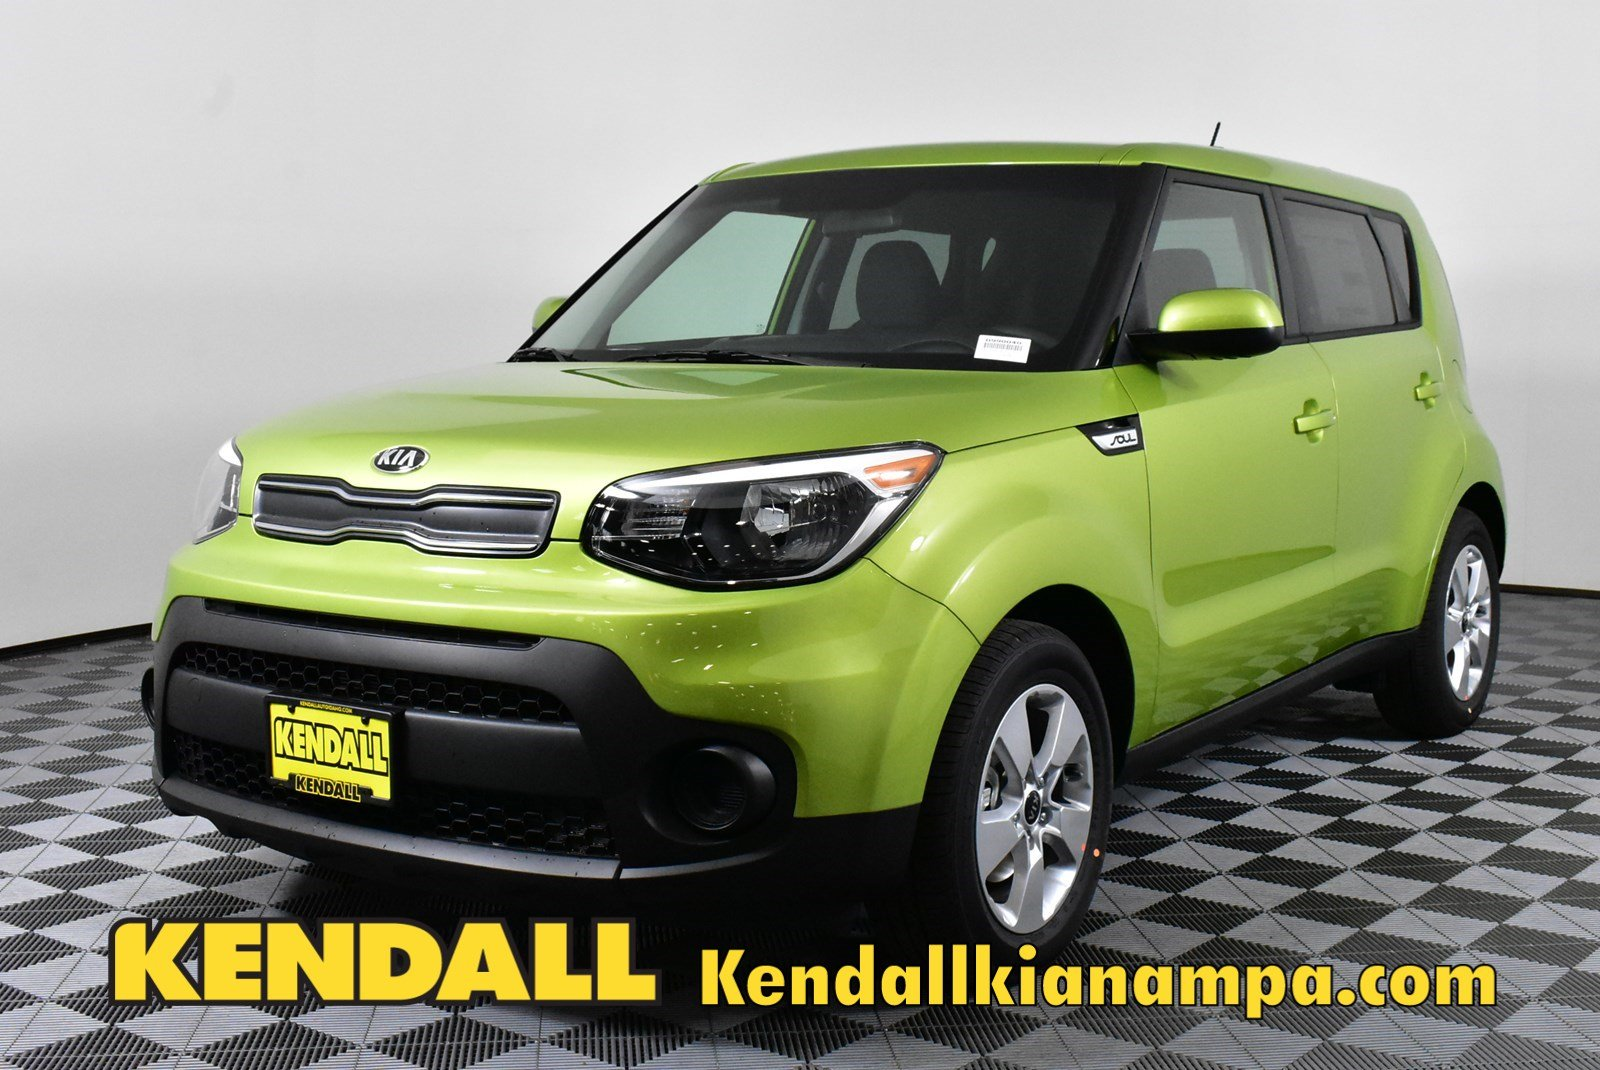 New Car Specials Boise Kendall At The Idaho Center Auto Mall 2001 Toyota 4runner Fuel Filter Location Lease A 2019 Kia Soul Automatic